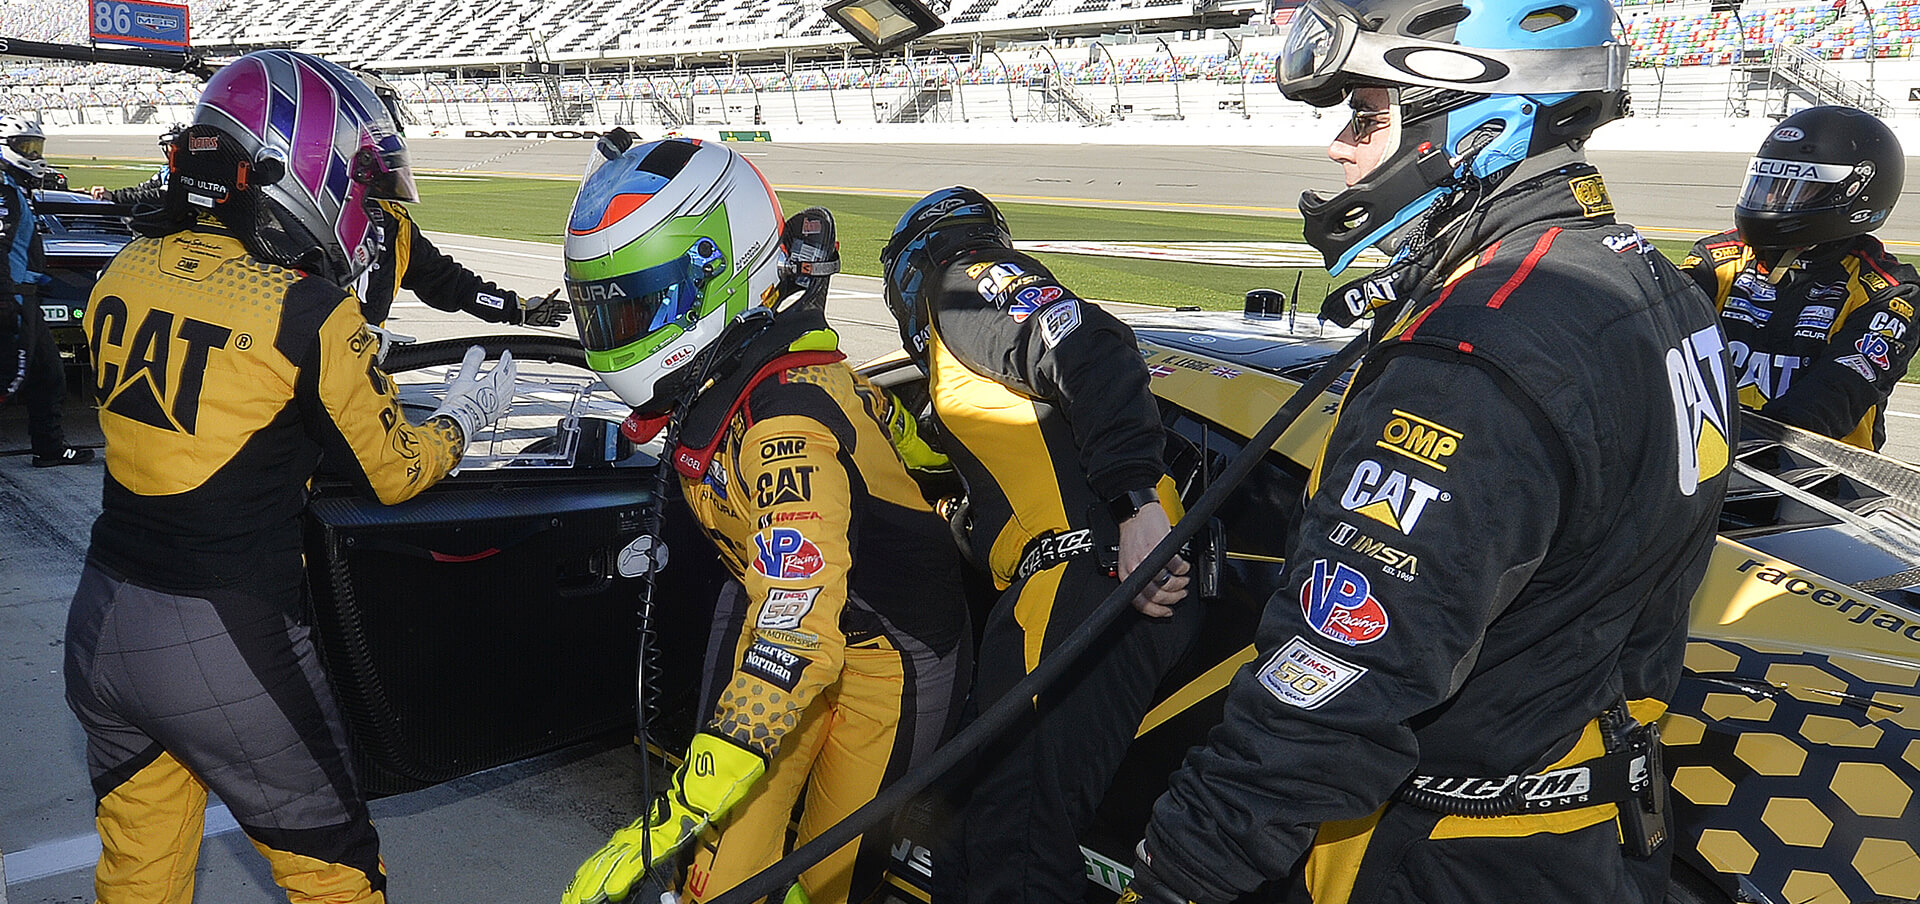 Heinricher Racing has assembled a group of drivers with plenty of experience, race knowl edge and speed on the track